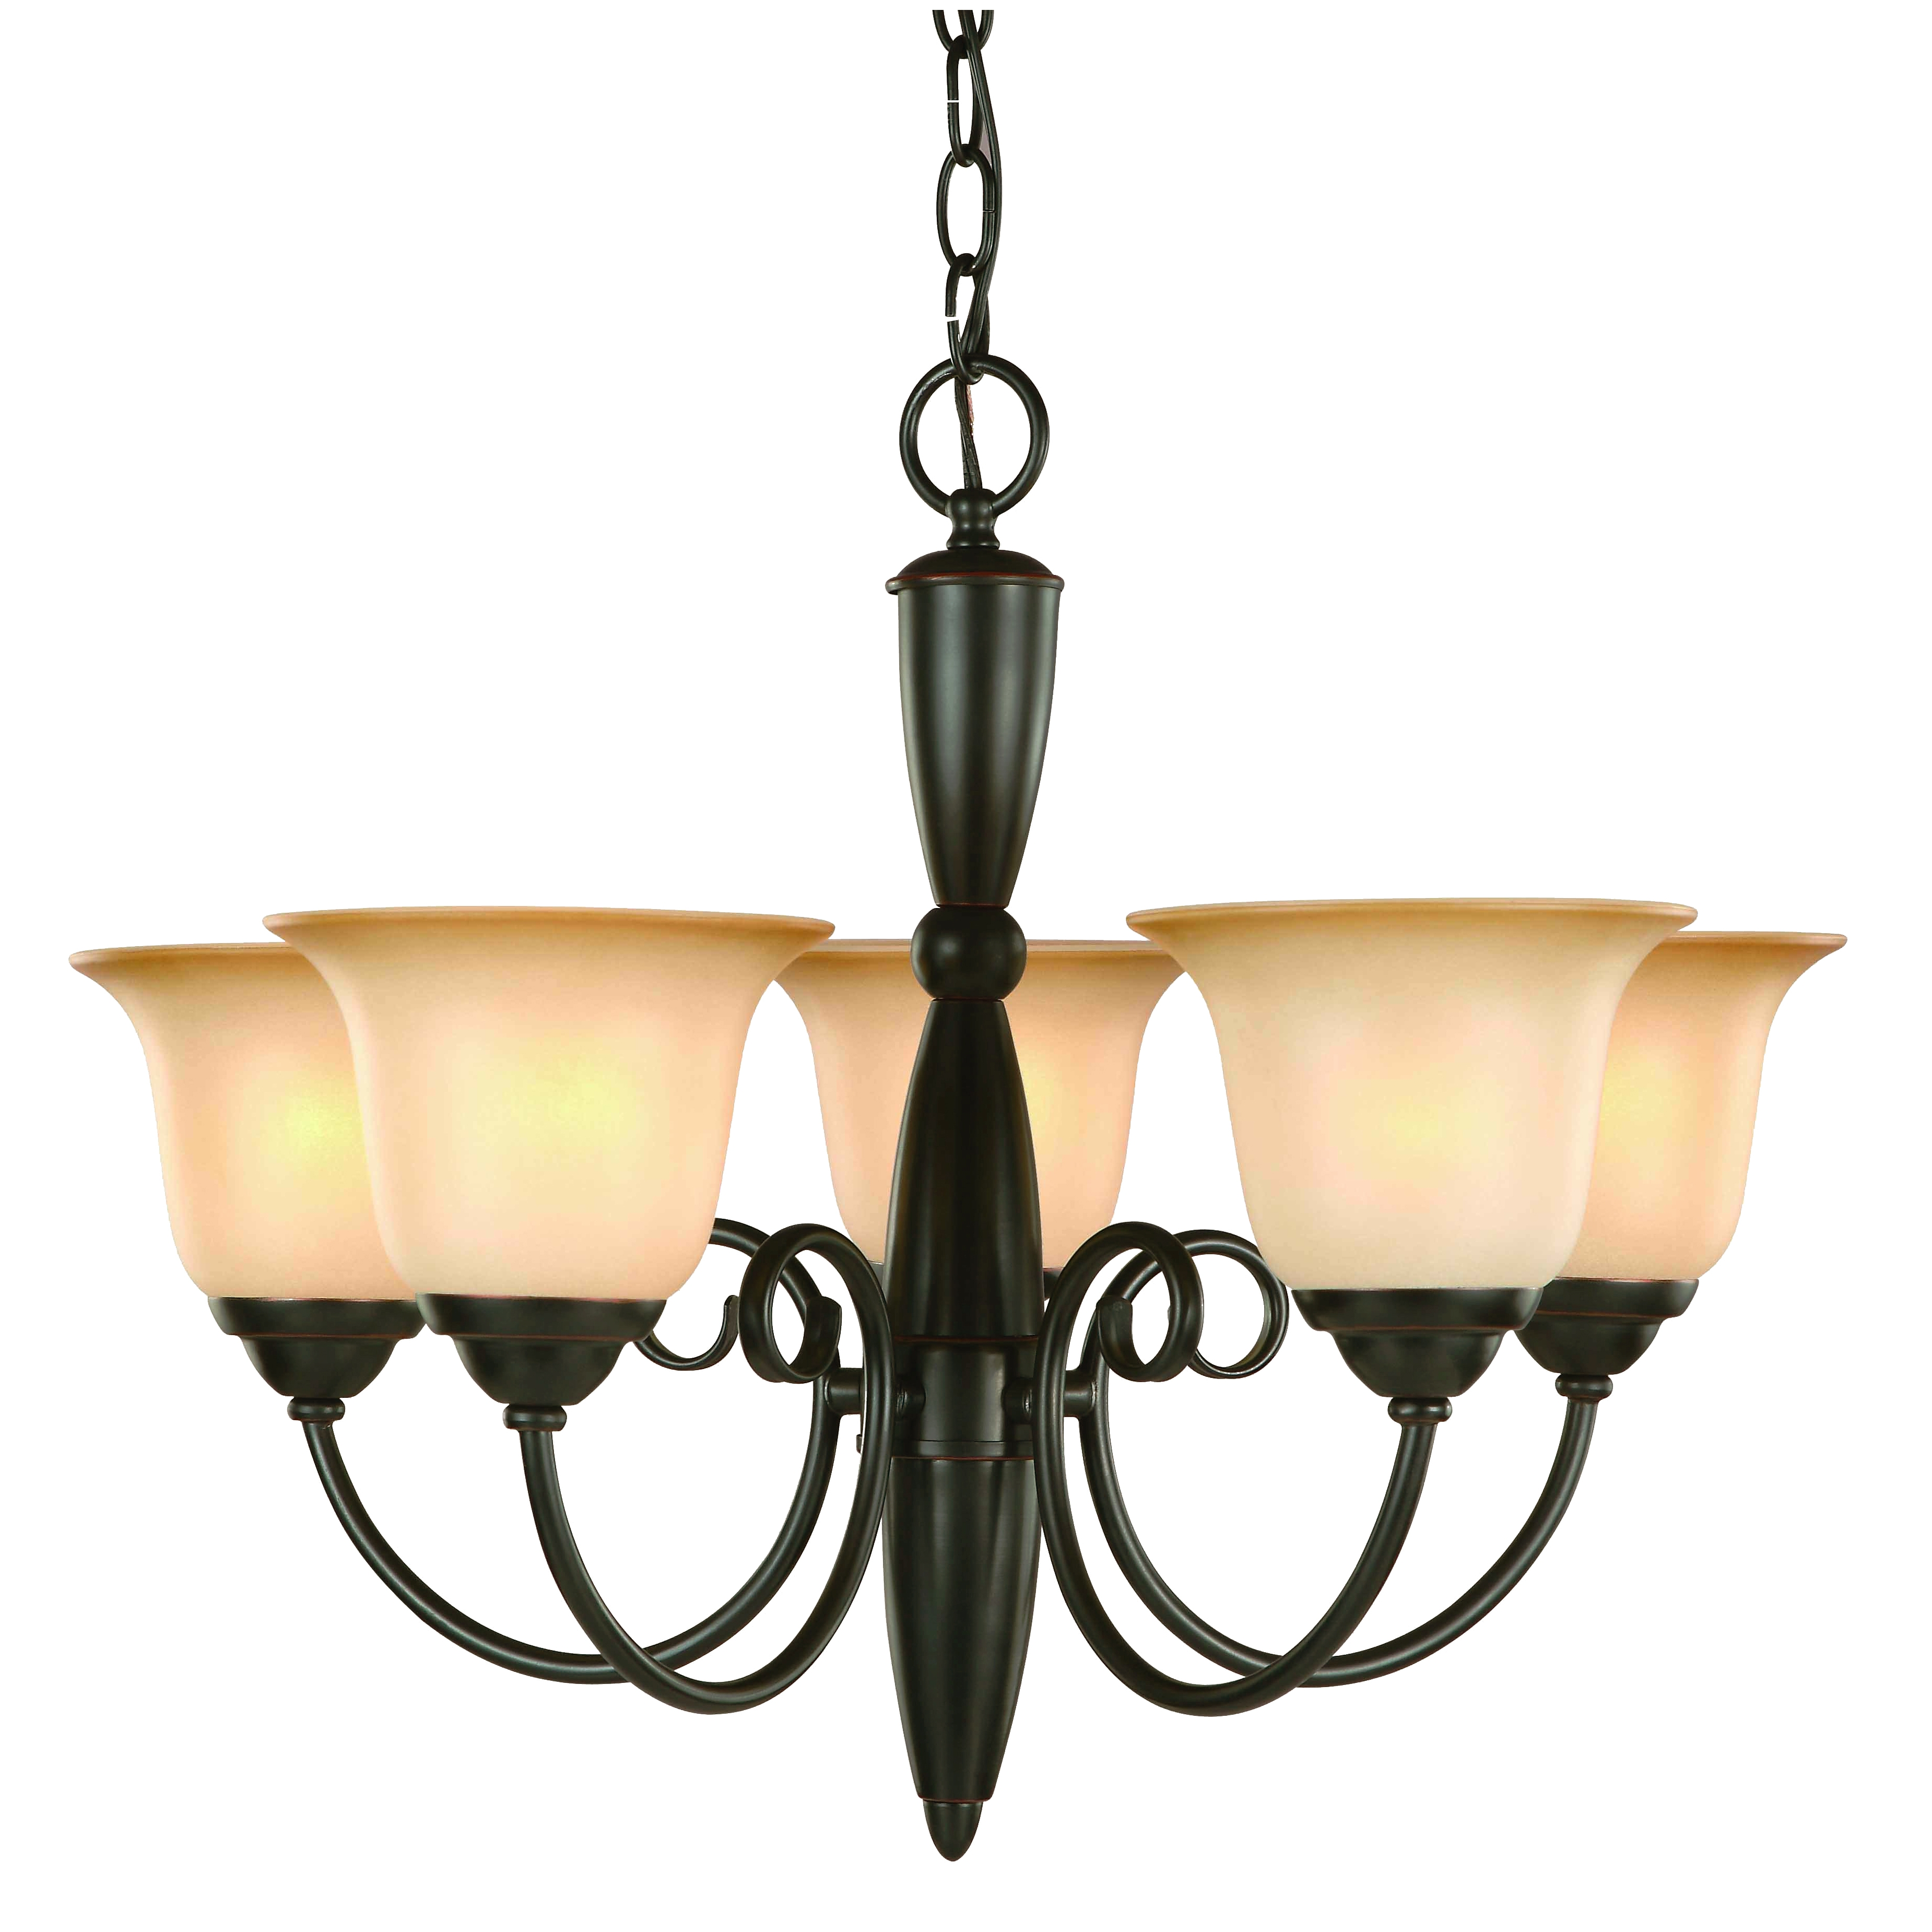 Oil Rubbed Bronze Bathroom Vanity Ceiling Lights Chandelier Pertaining To Chandelier Lights (#12 of 12)